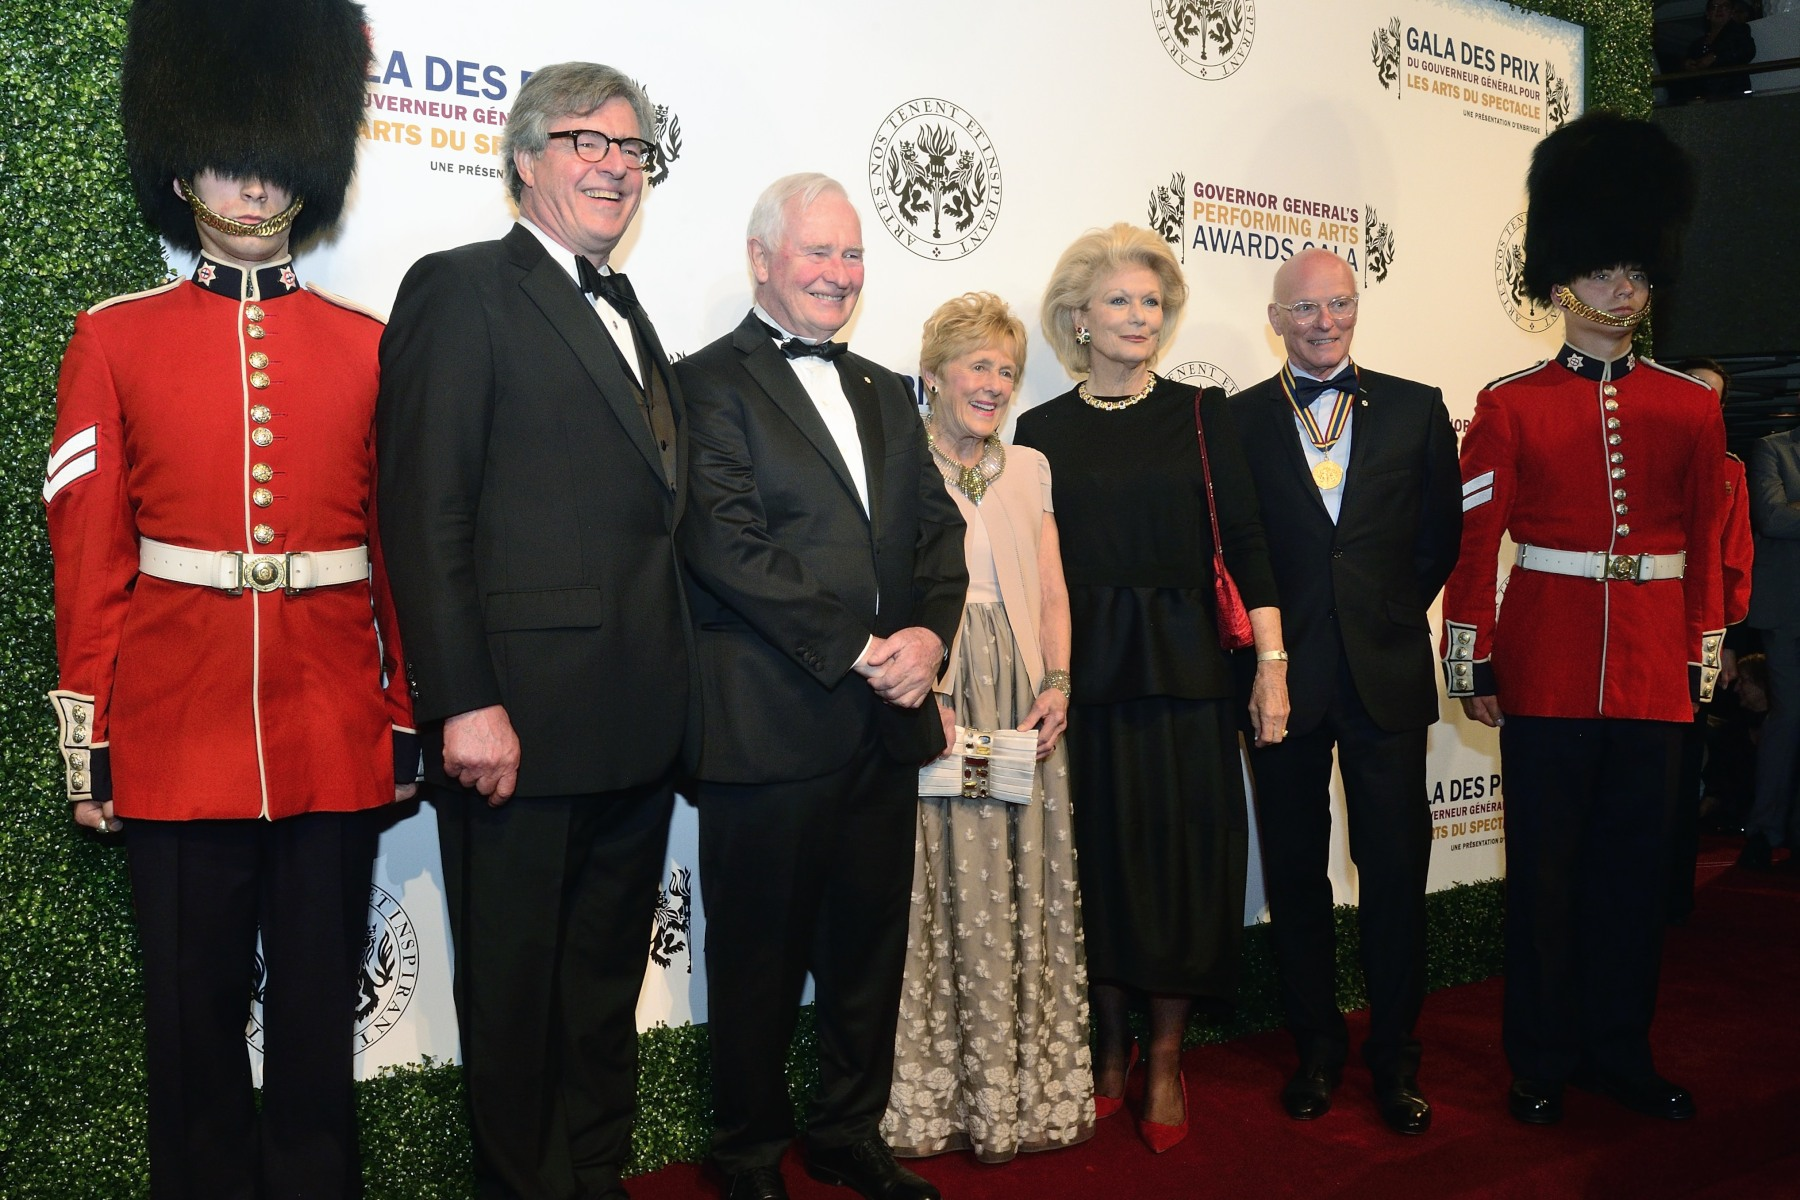 The Governor General and Mrs. Johnston took a pose on the red carpet upon their arrival at the National Art Centre. They are accompanied here by Douglas Knight (far left), Chair of the GGPAA Fondation and Paul-André Fortier (far right), Co-Chair of the GGPAA Foundation.